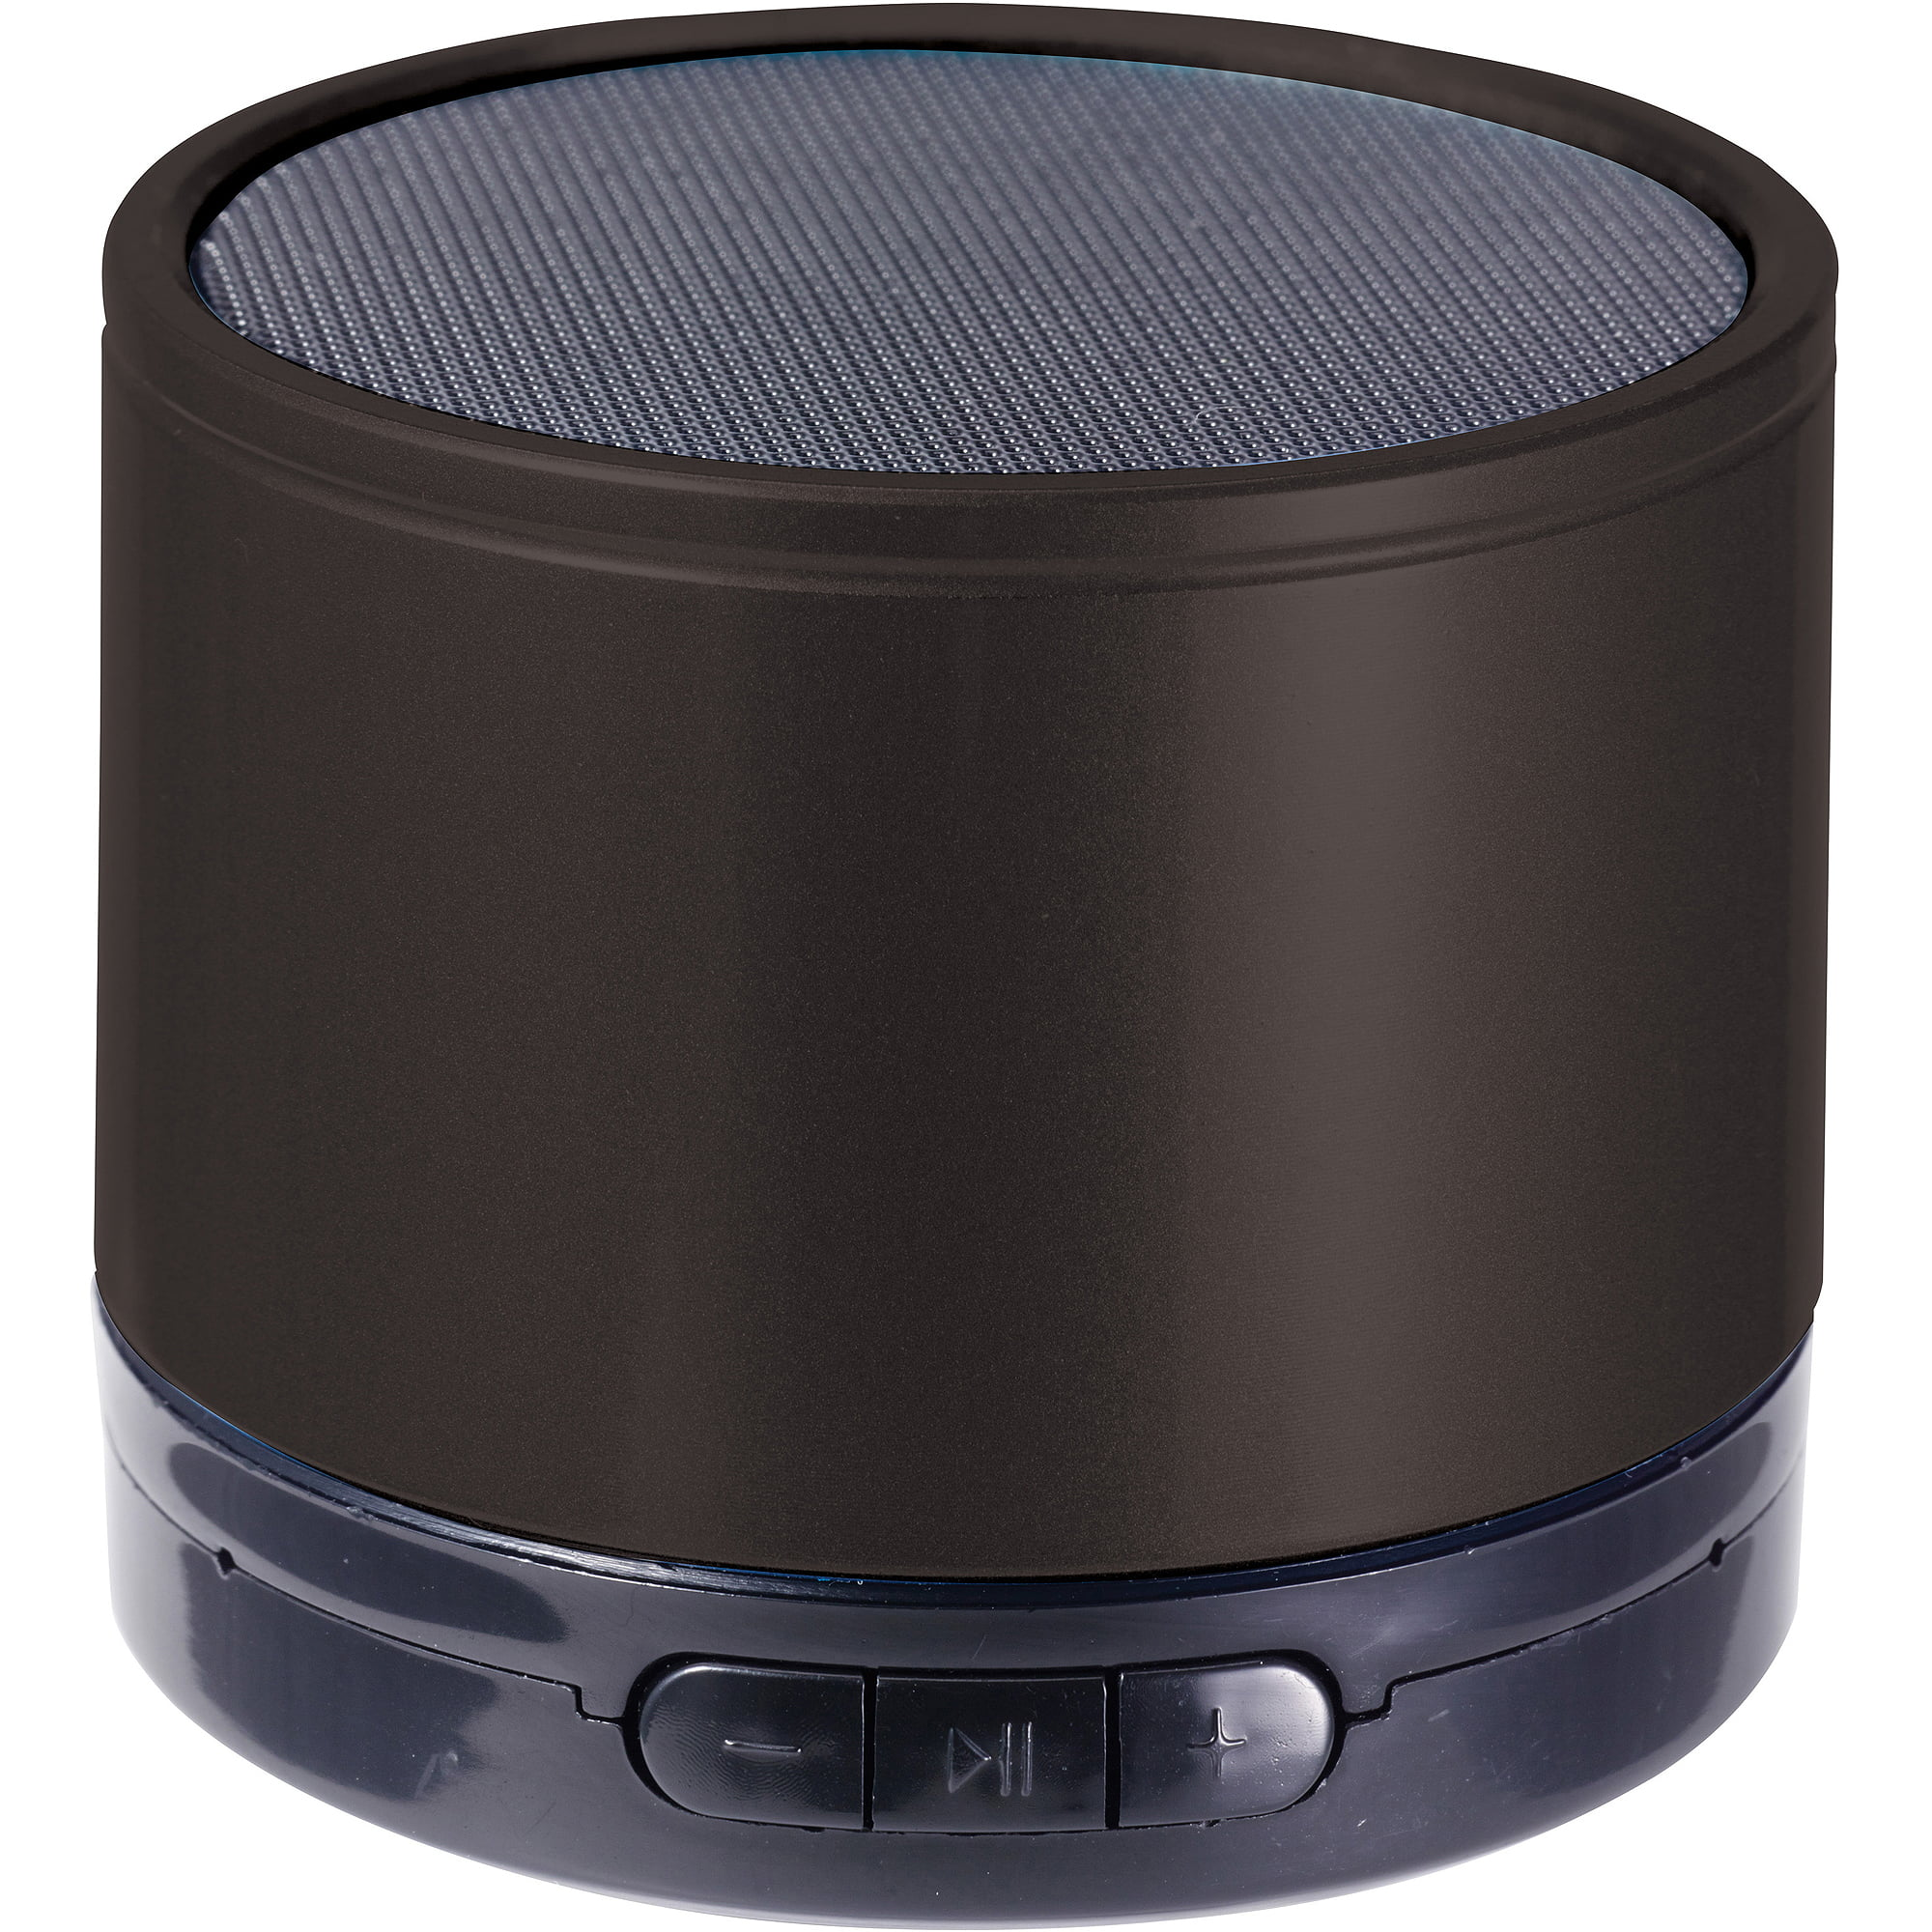 Mrice Campers 1 0 Portable Outdoor Wireless Bluetooth Speakers Patio Design